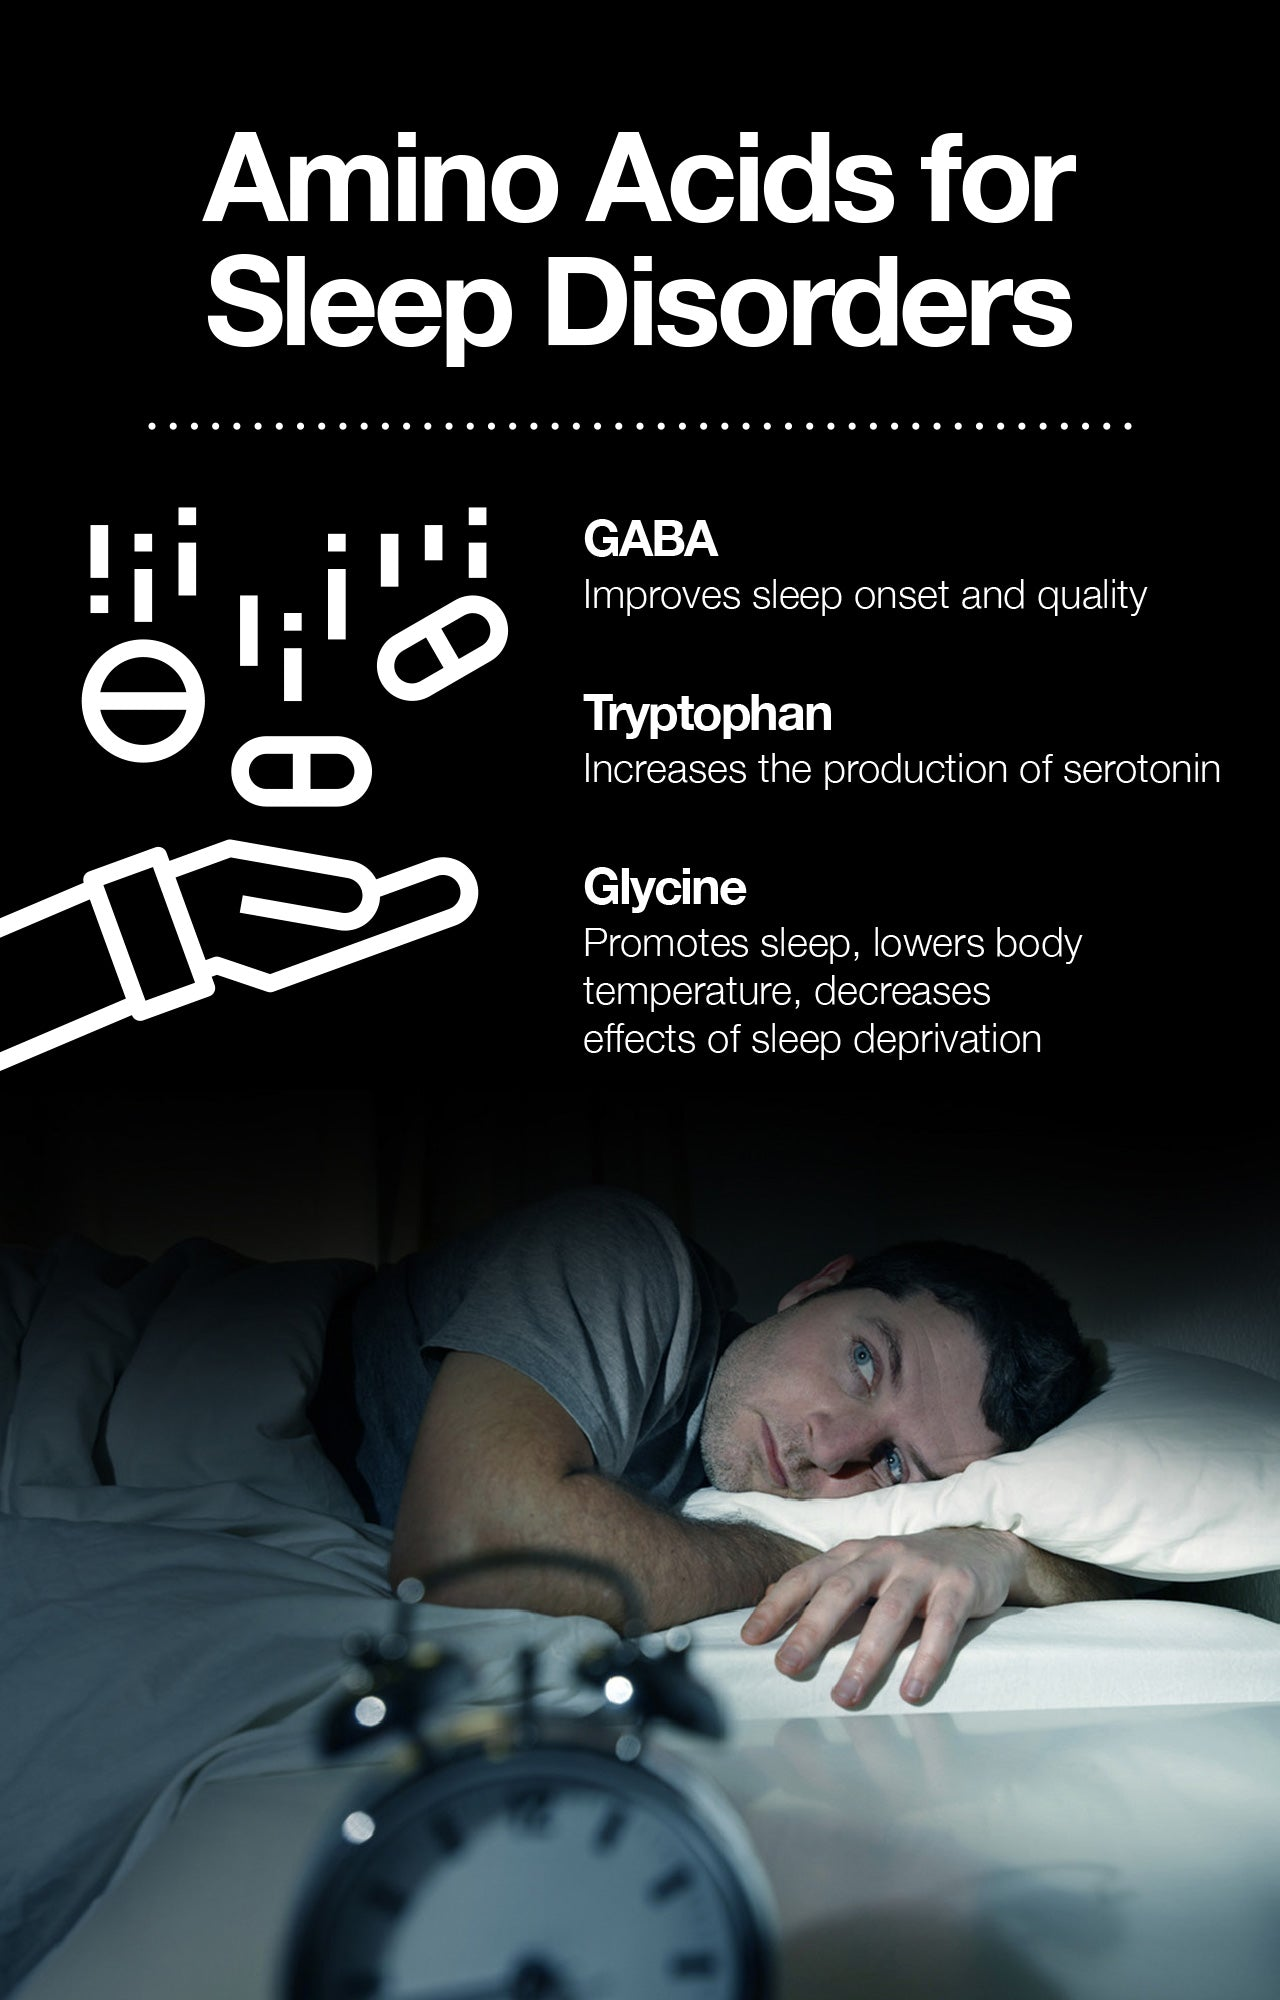 Sleeping disorders are a group of conditions that affect sleep patterns.